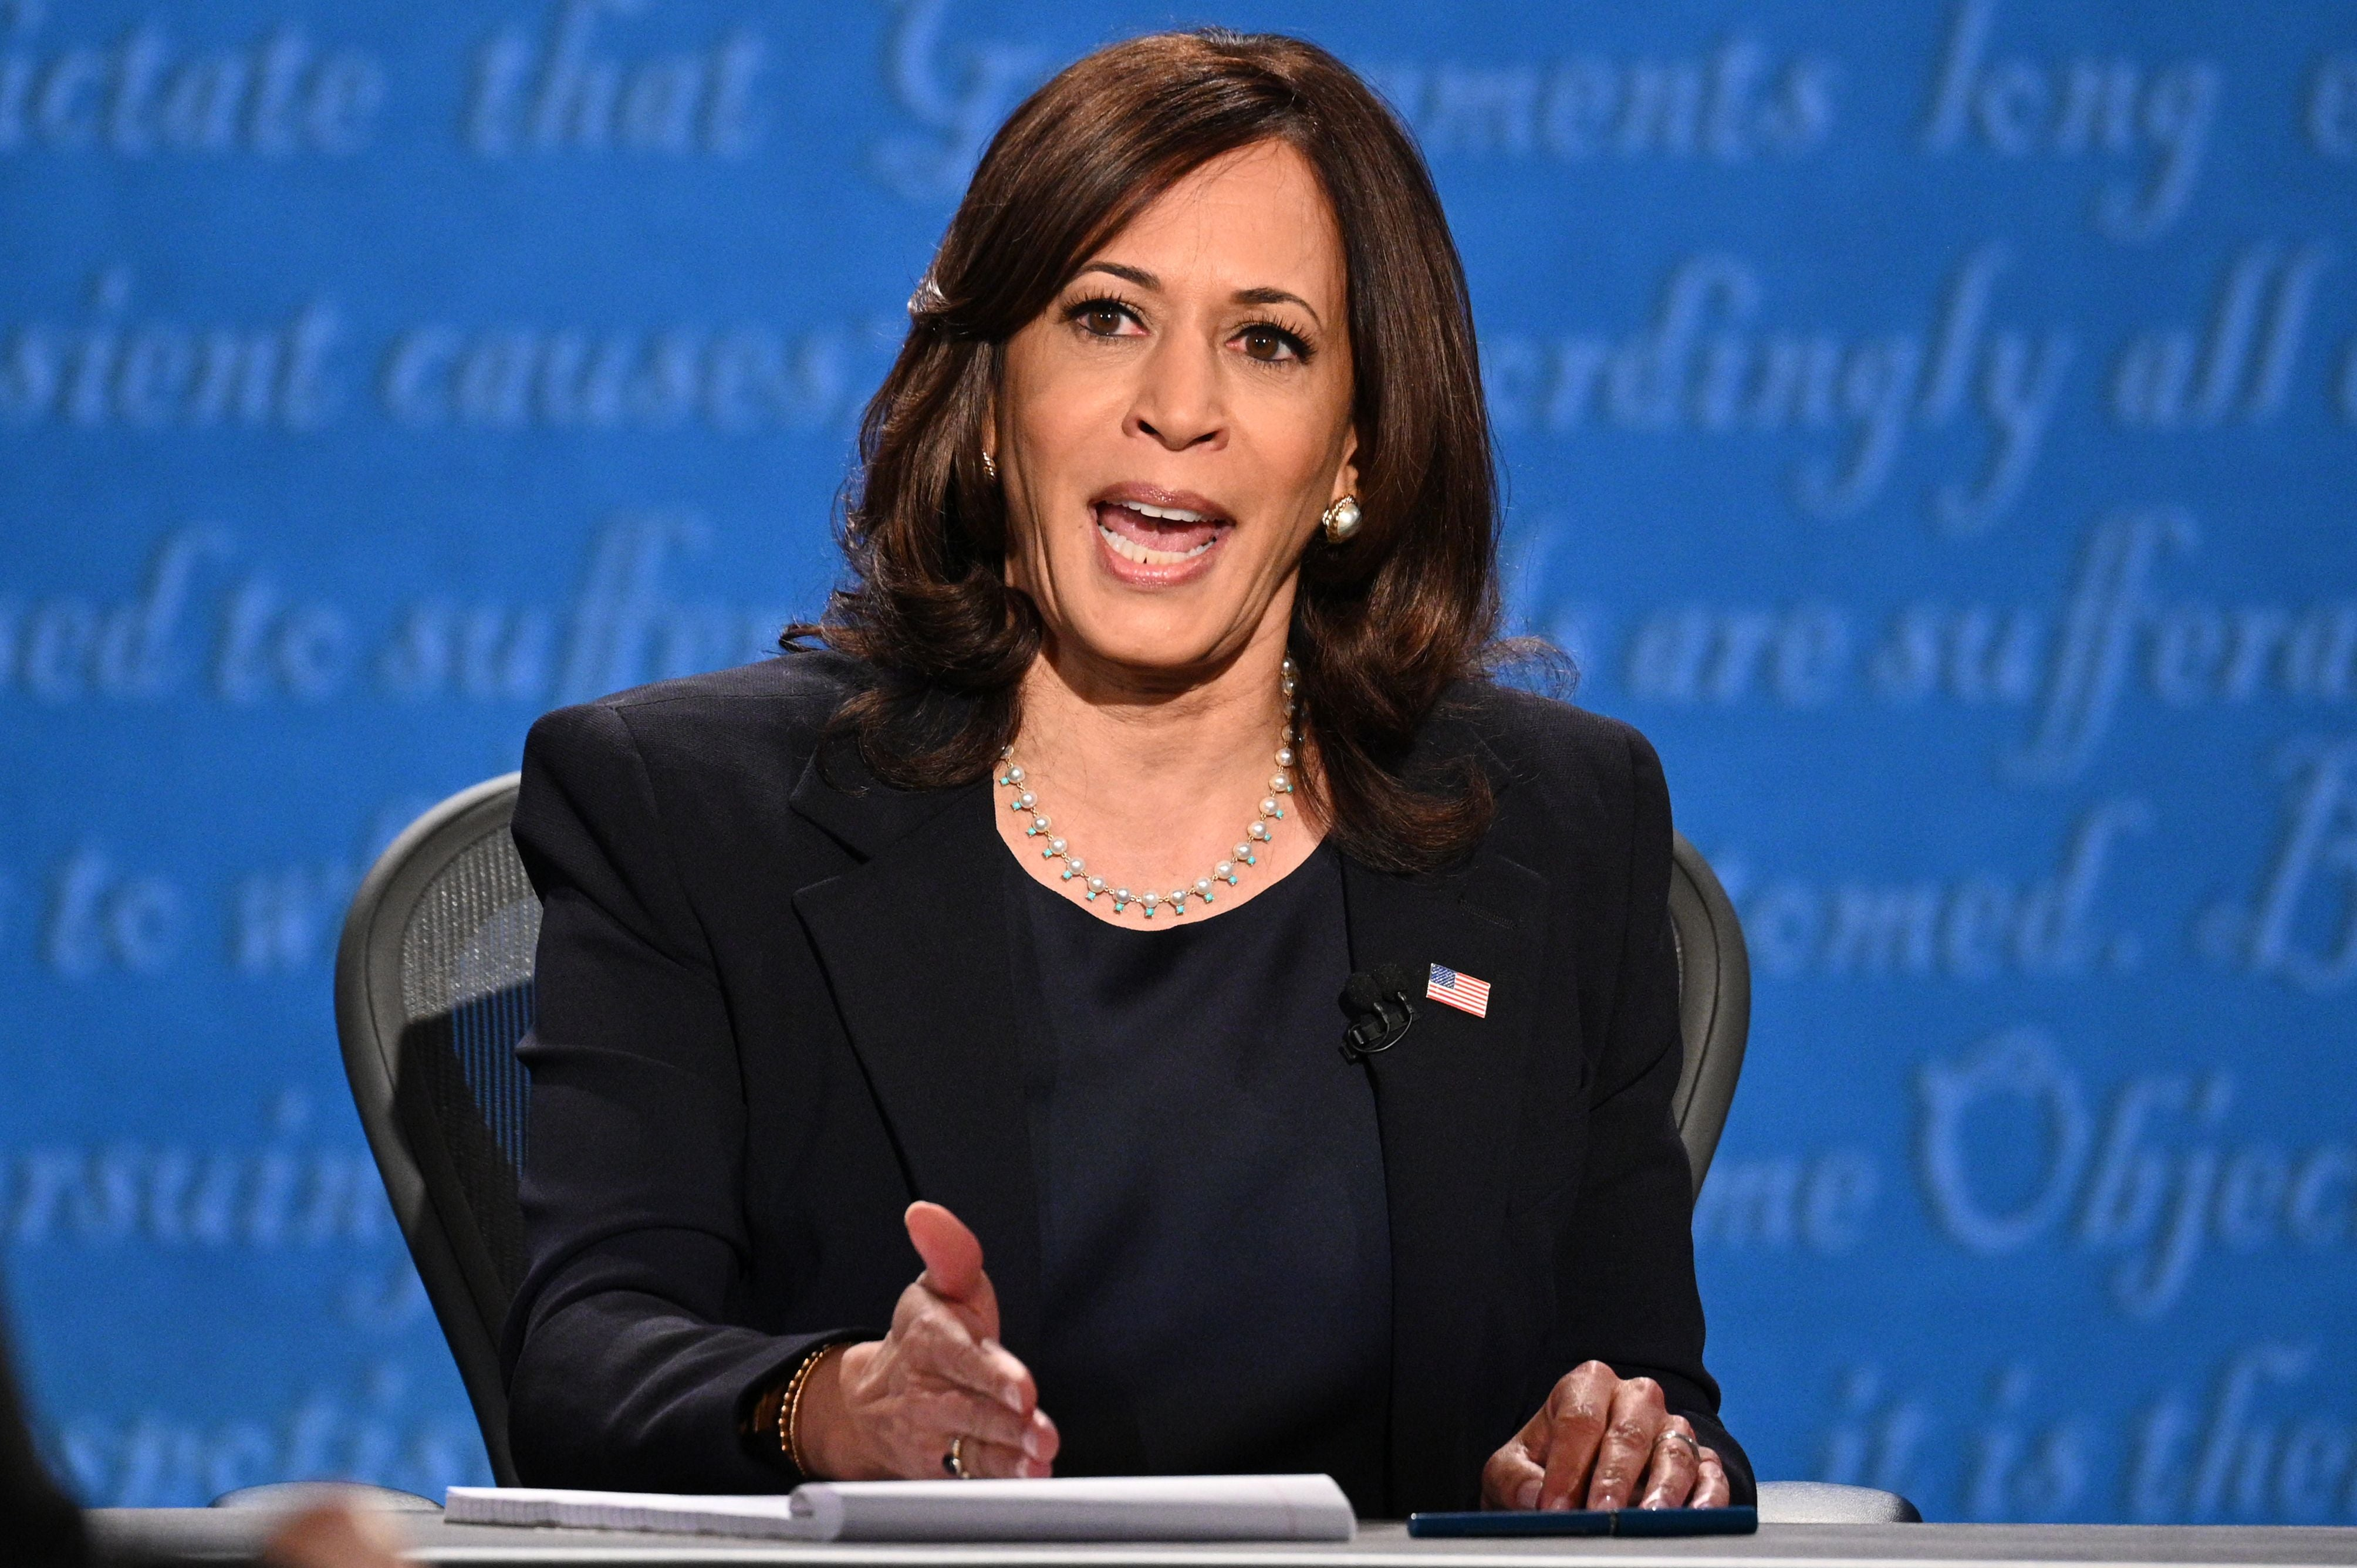 Kamala Harris Fever Is Gripping India But Not Everyone Is Convinced The Independent